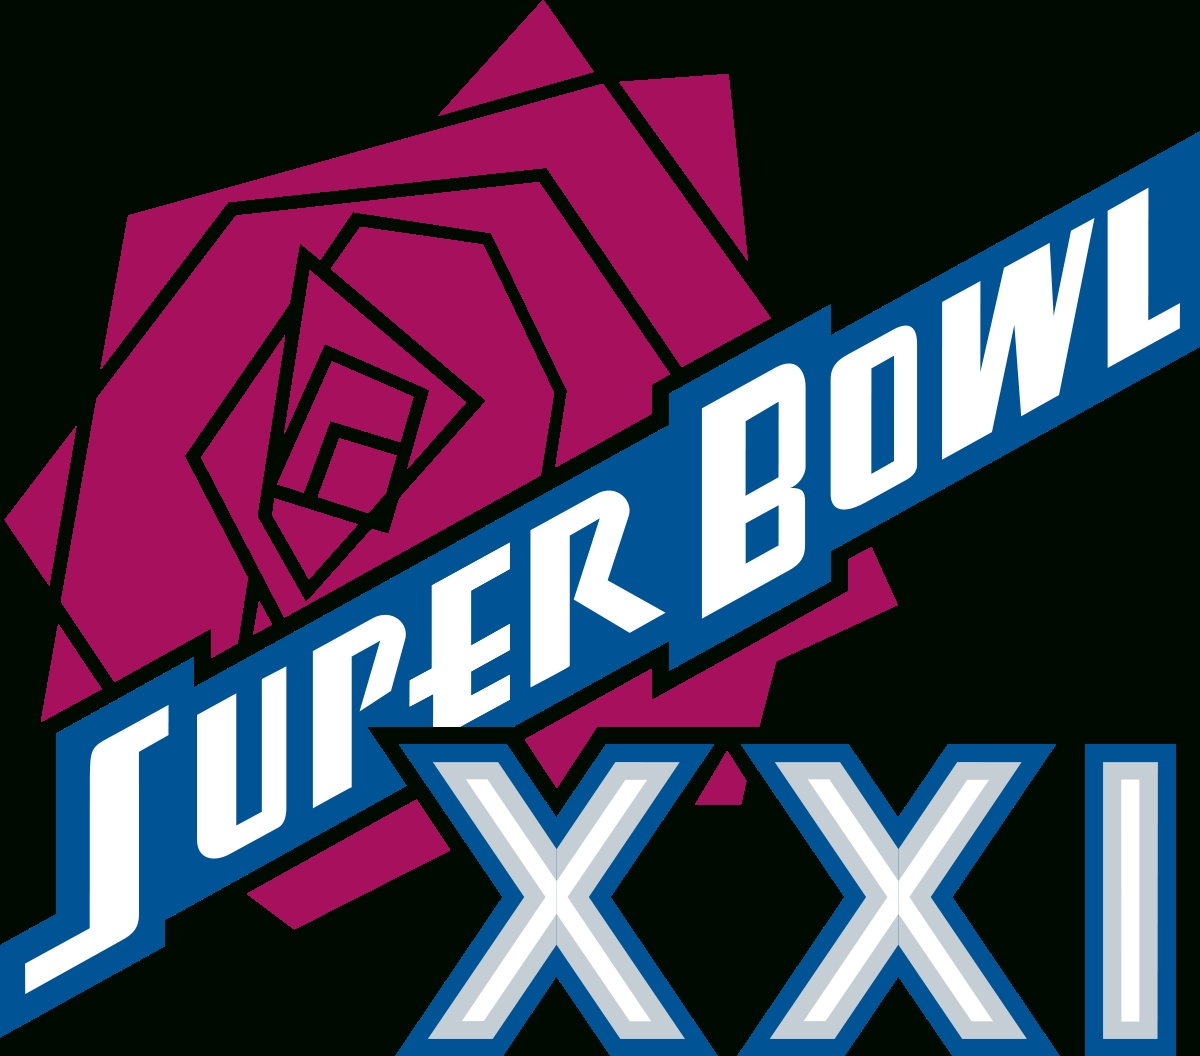 Super Bowl Xxi - Wikipedia for Super Bowl 25 Winner